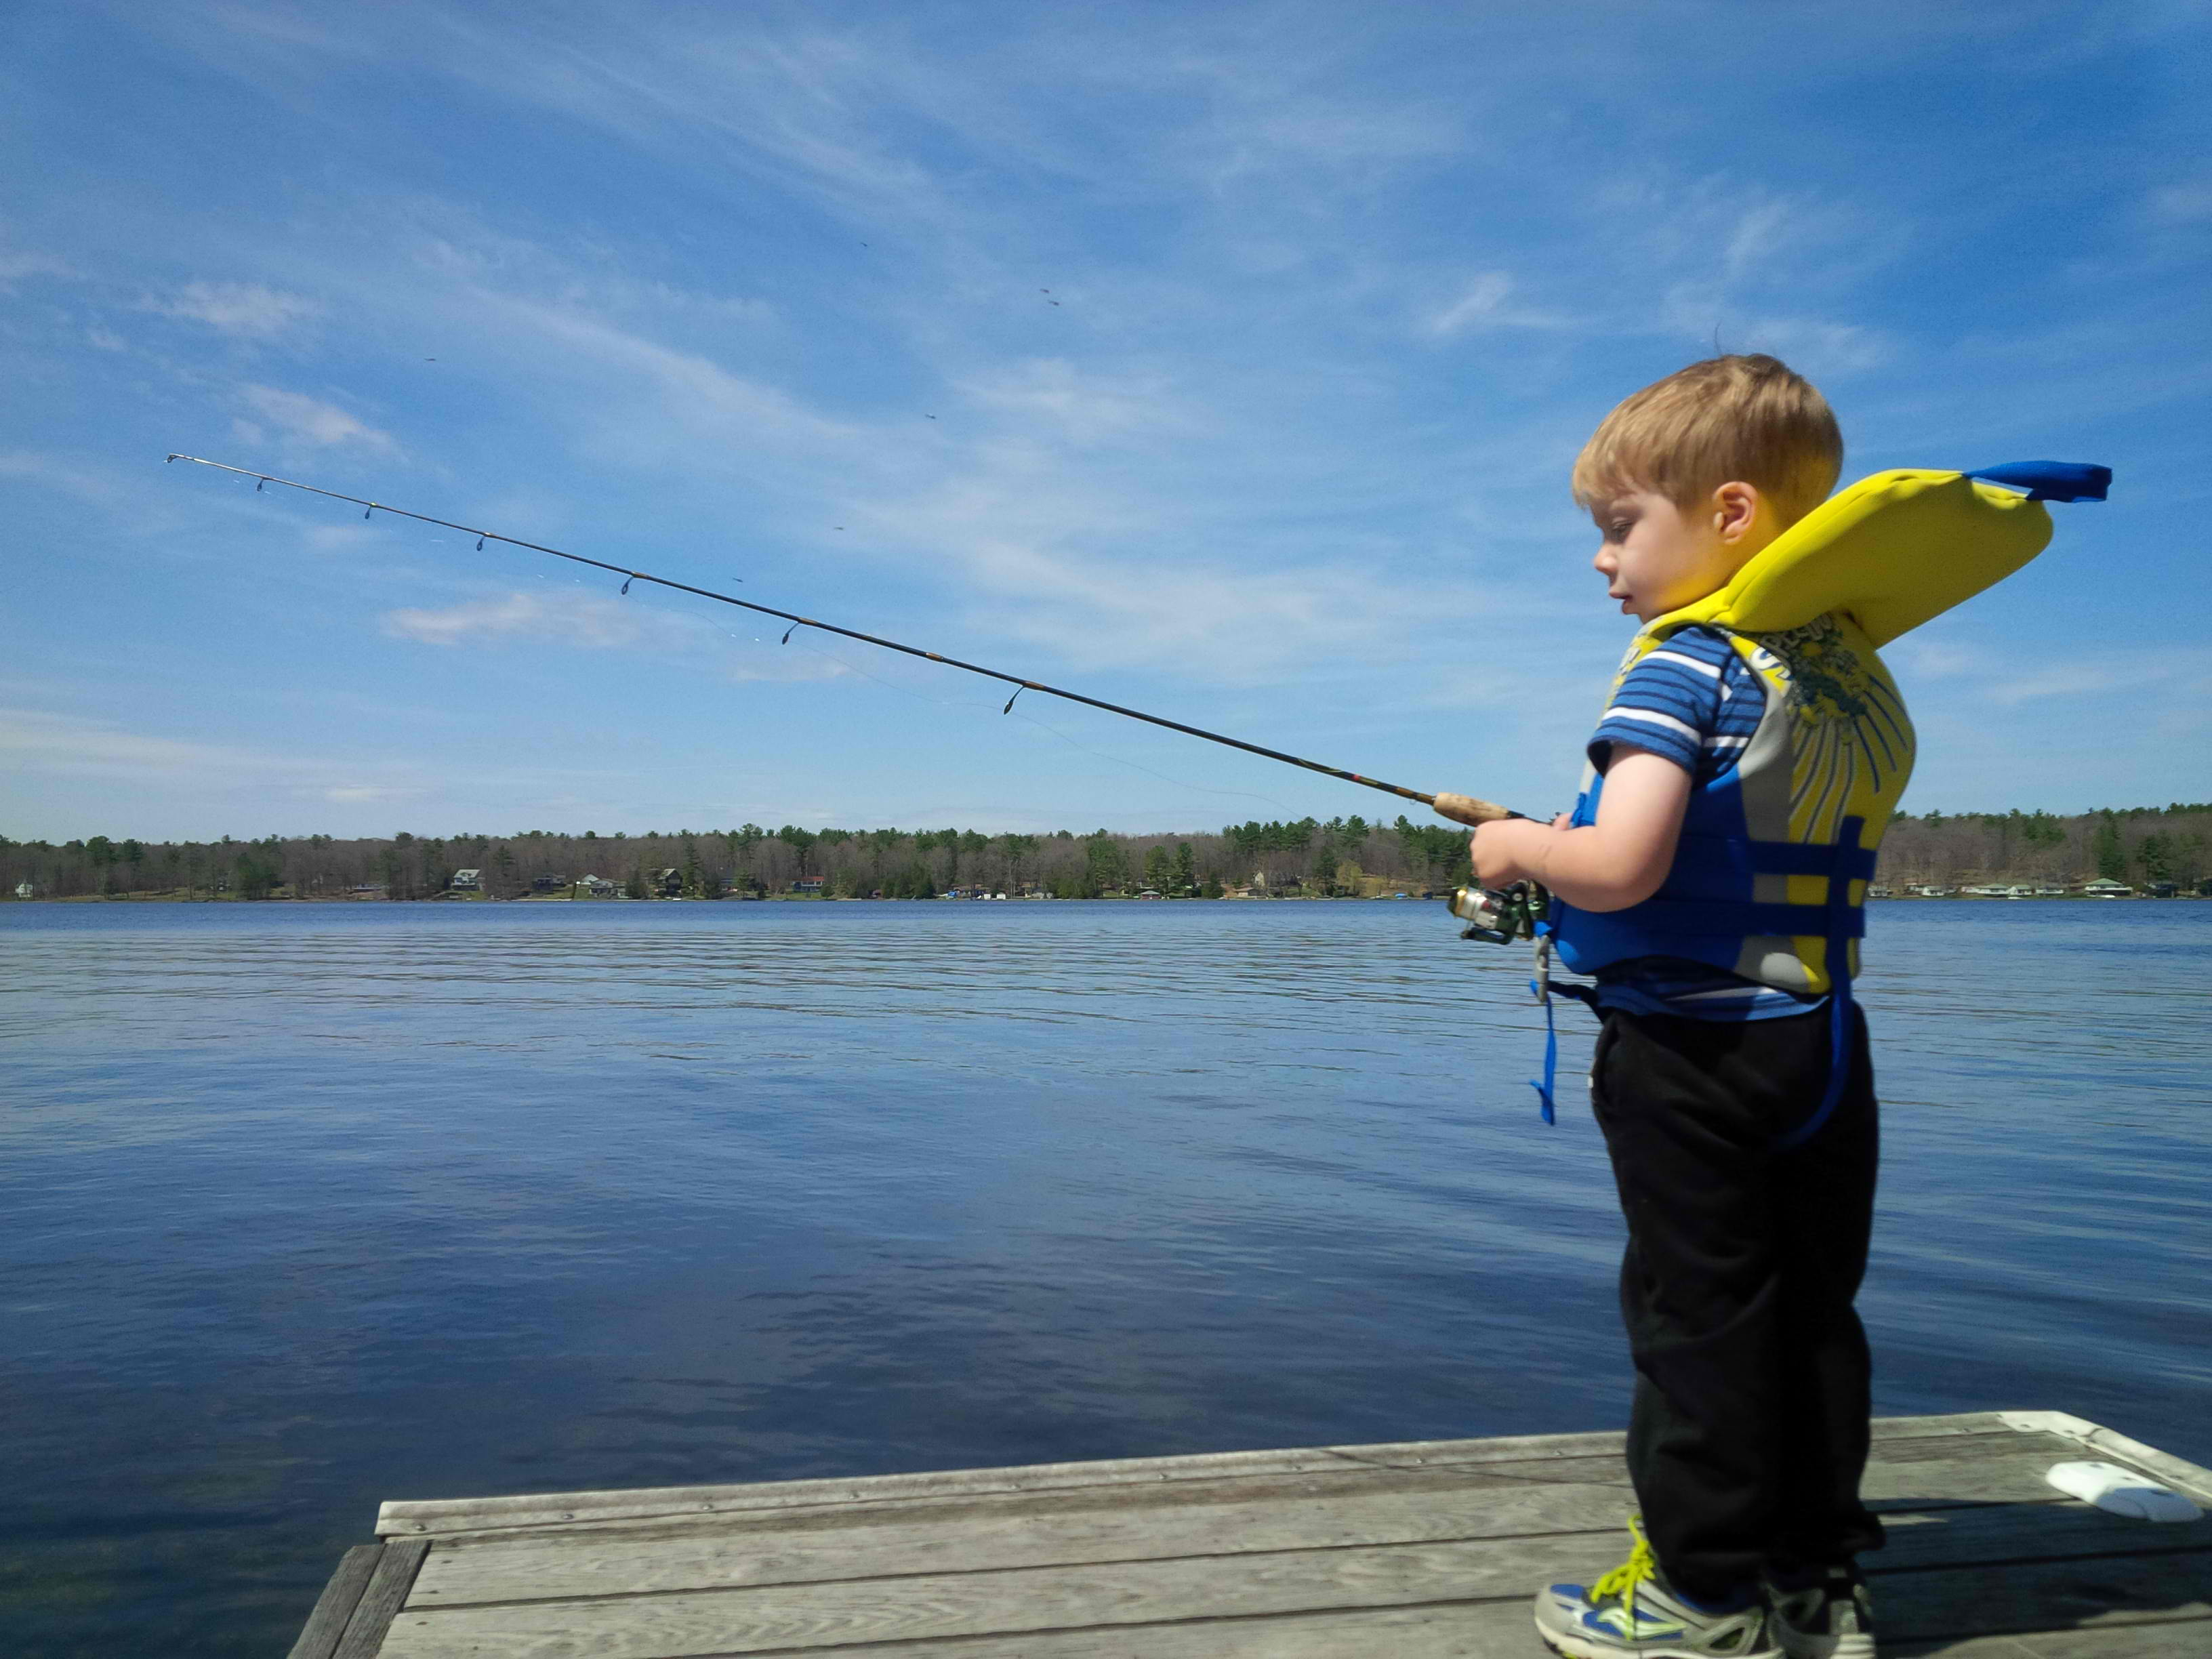 Andrew-Shufelt-Boy-on-Dock-with-Fishing-Rod1